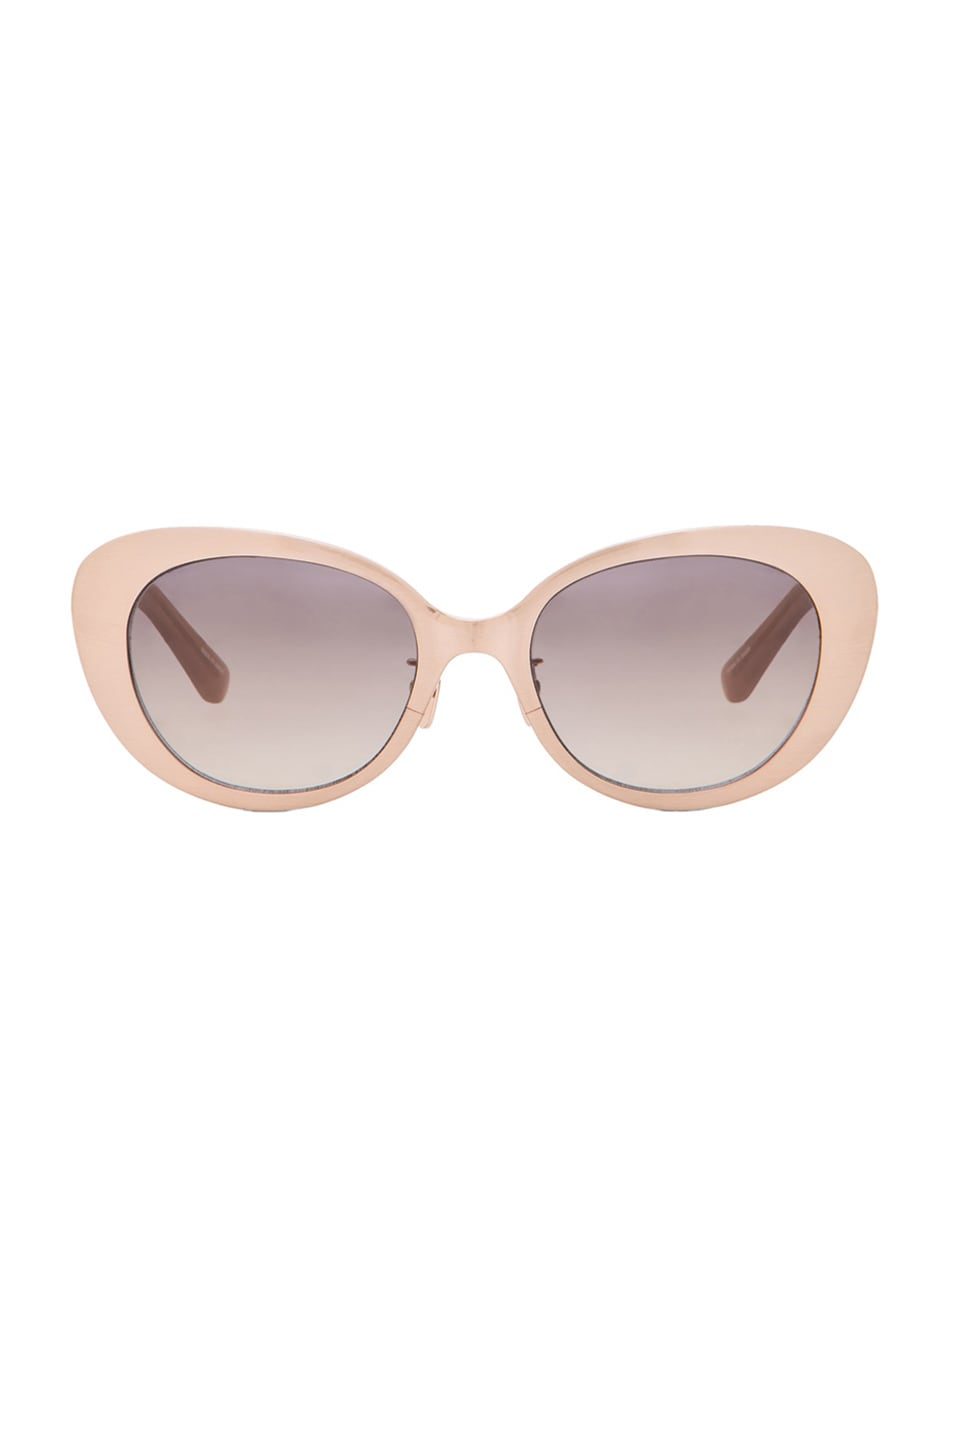 Image 1 of Linda Farrow Rounded Cat Eye Sunglasses in Rose & Grey